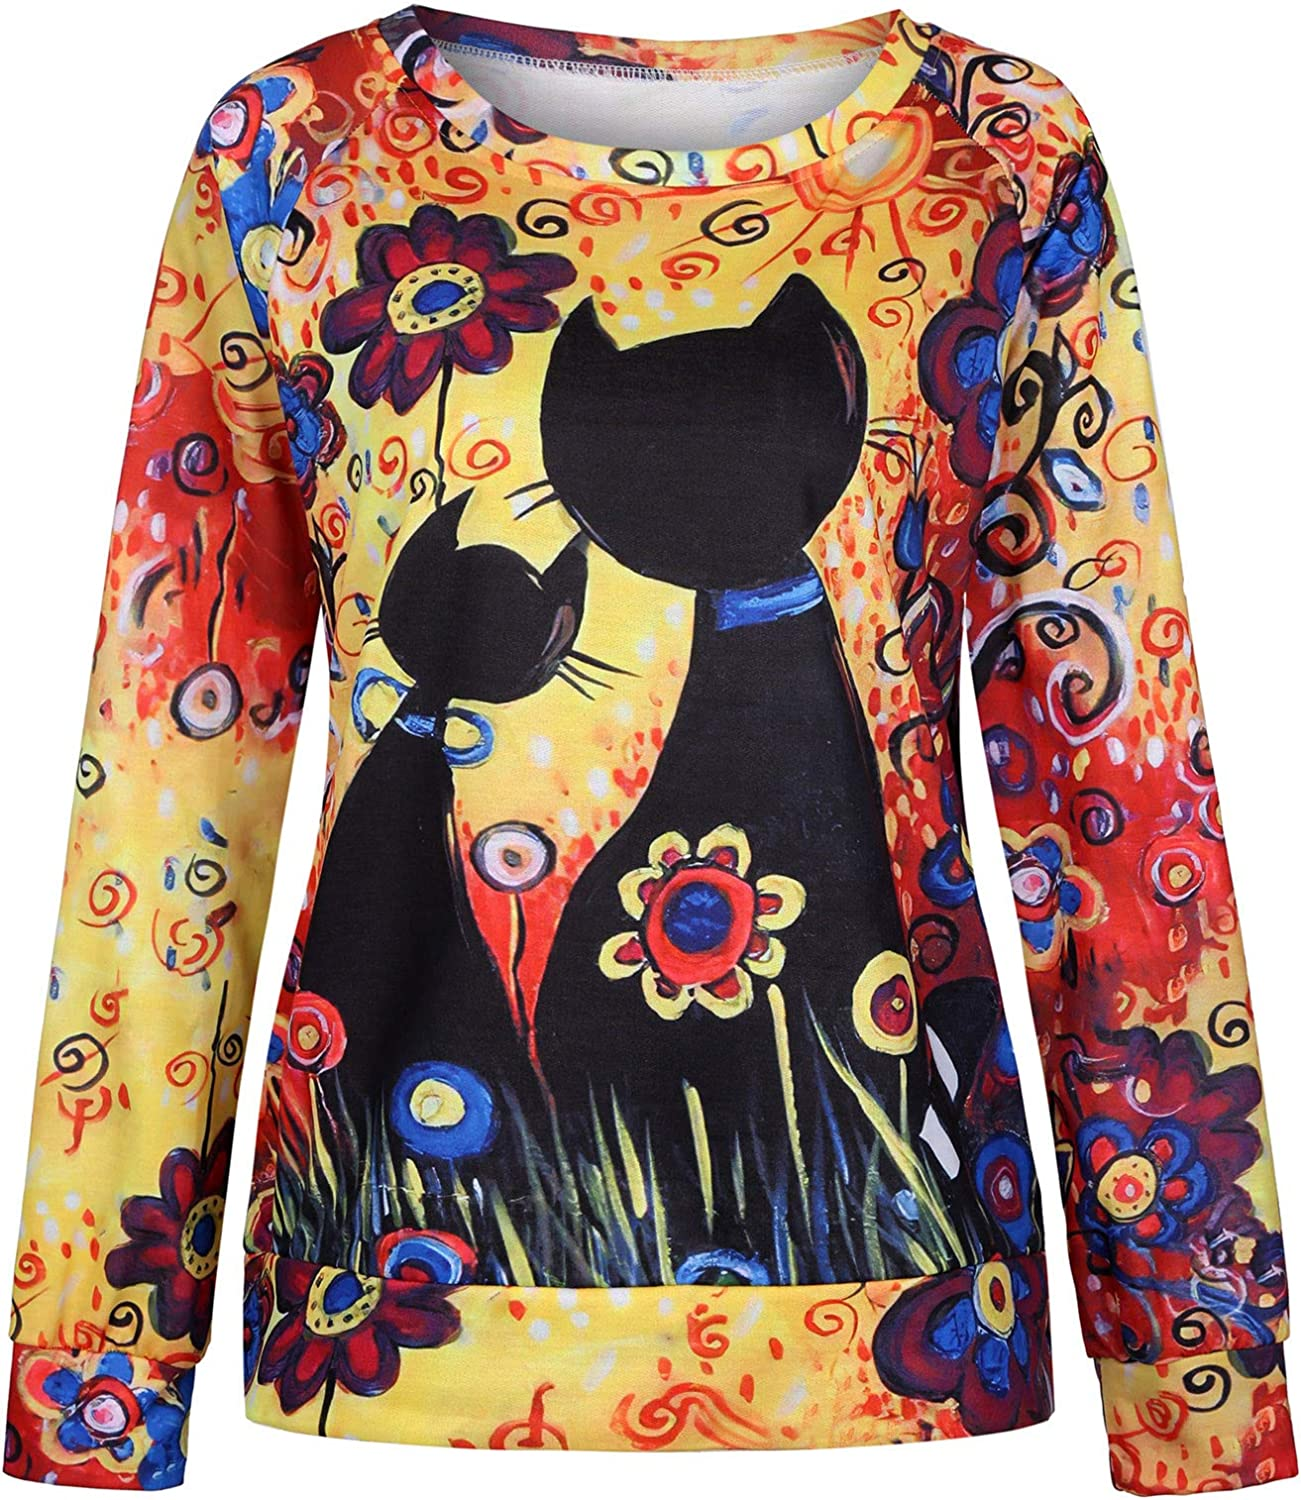 Hotkey Womens Sweatshirts Floral Cute Cat Printed Womens Fall Clothes Long Sleeve O-Neck Tops Pullover Casual Jumper Blouse